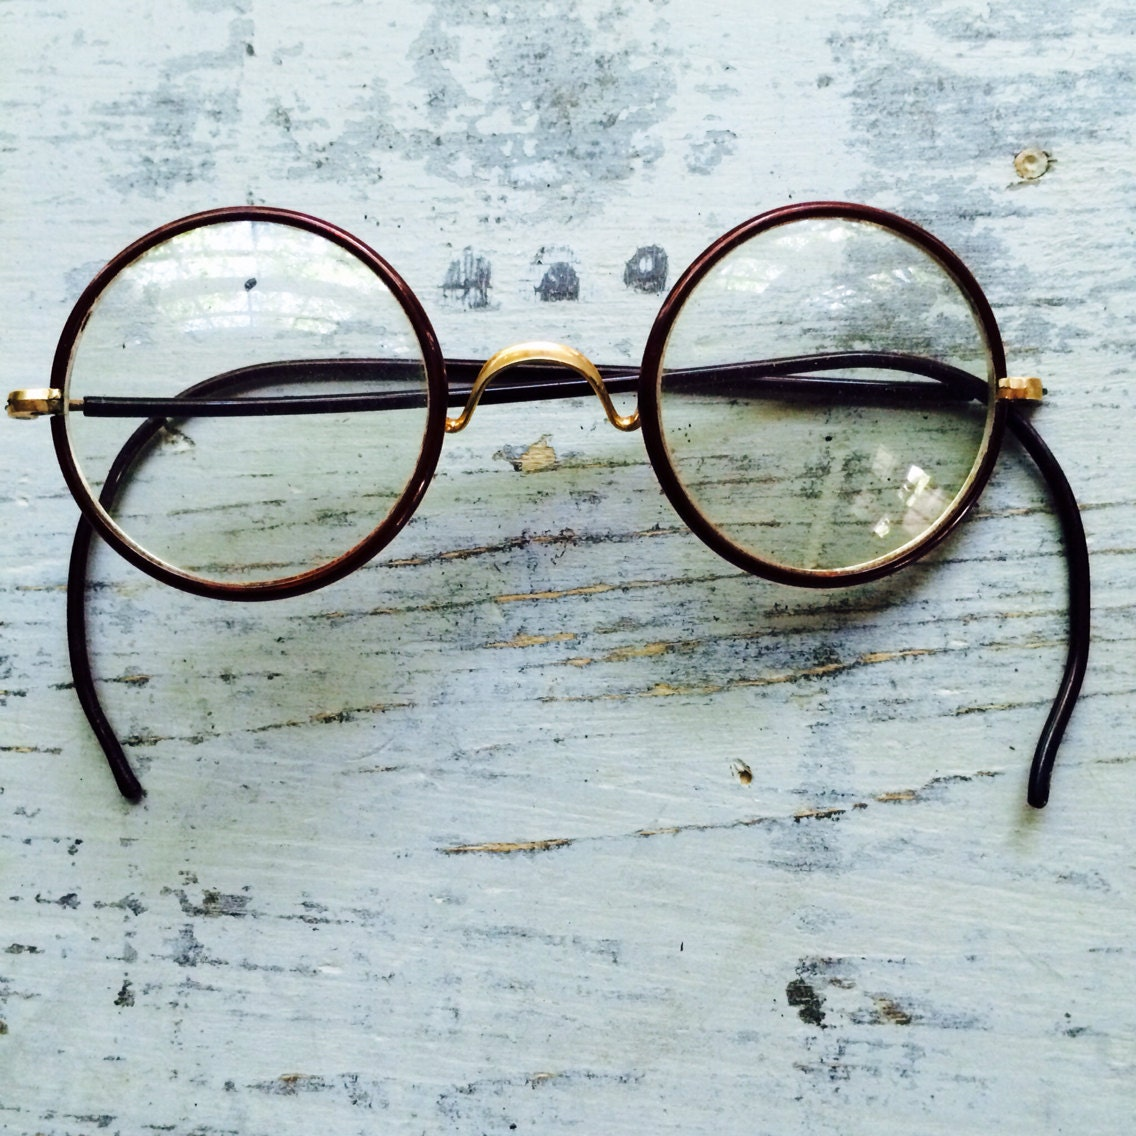 Wire Frame Glasses Vintage : Vintage Round Frame Glasses // MH Harris Wire Rim Earpiece